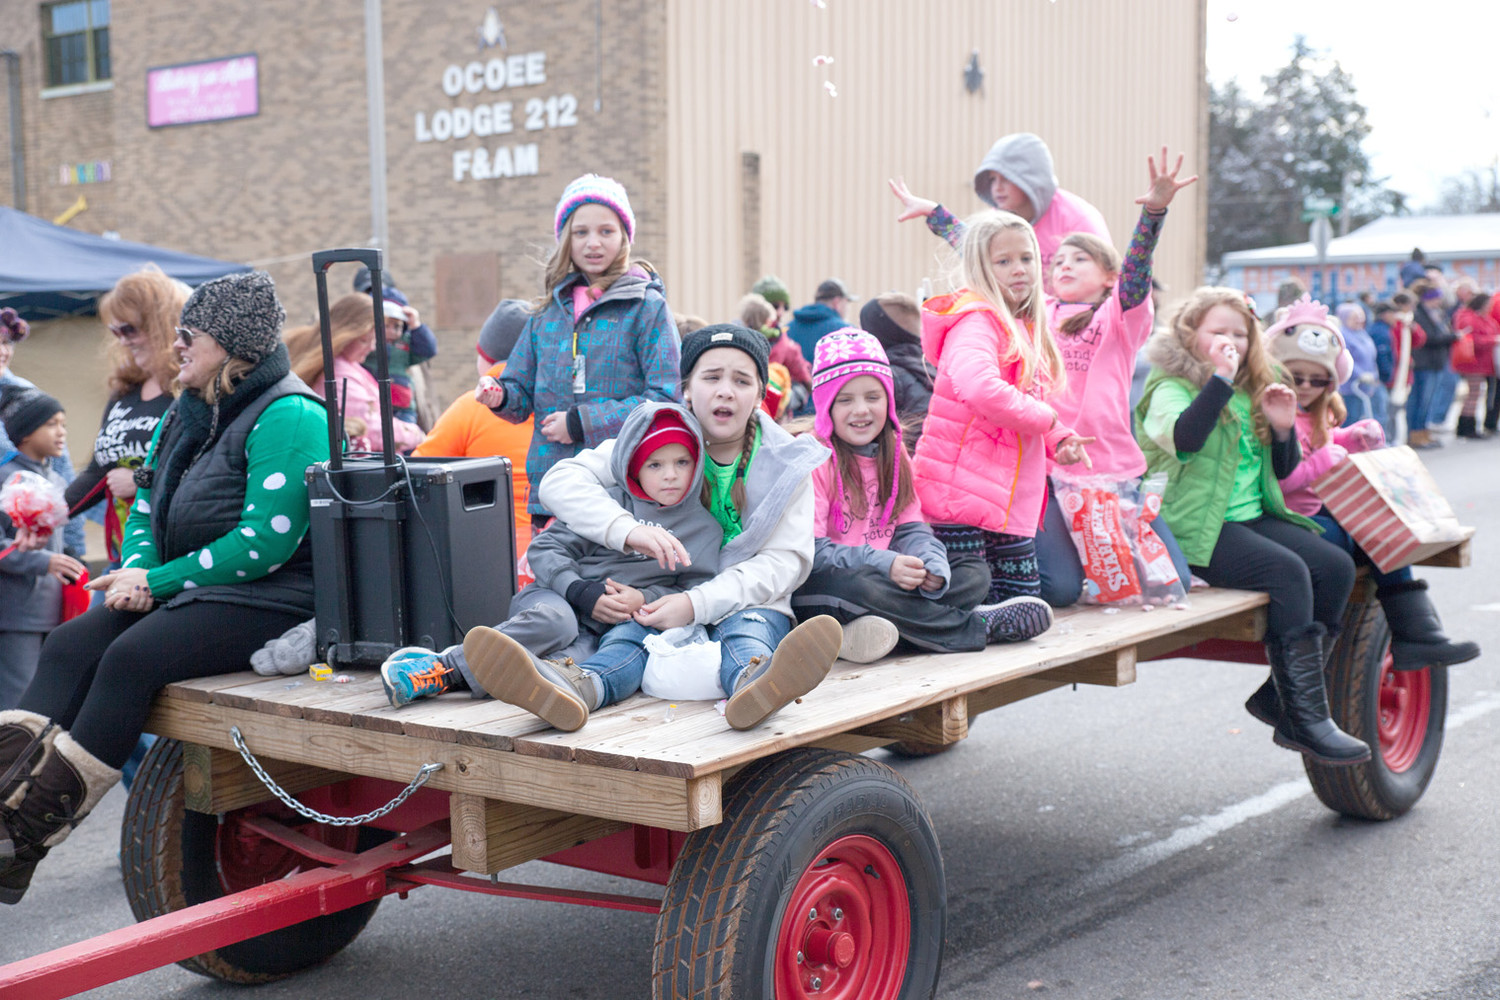 THIS FLOAT WAS BURSTING with Christmas Spirit as most sang carols and tossed candy out spreading cheer.